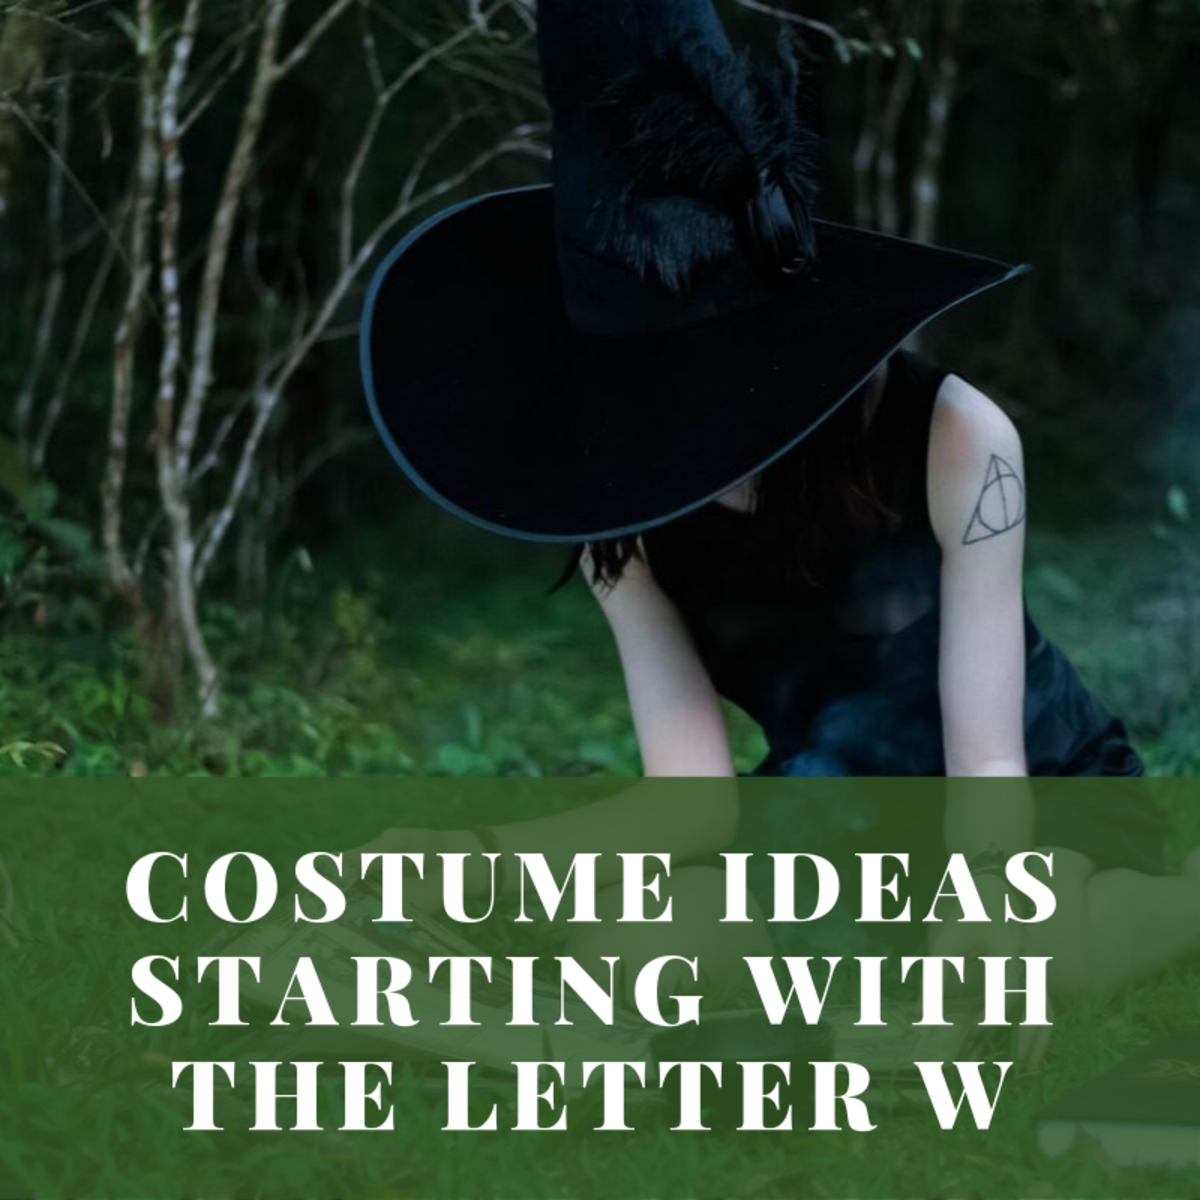 These costumes are great for Halloween or any costume party!